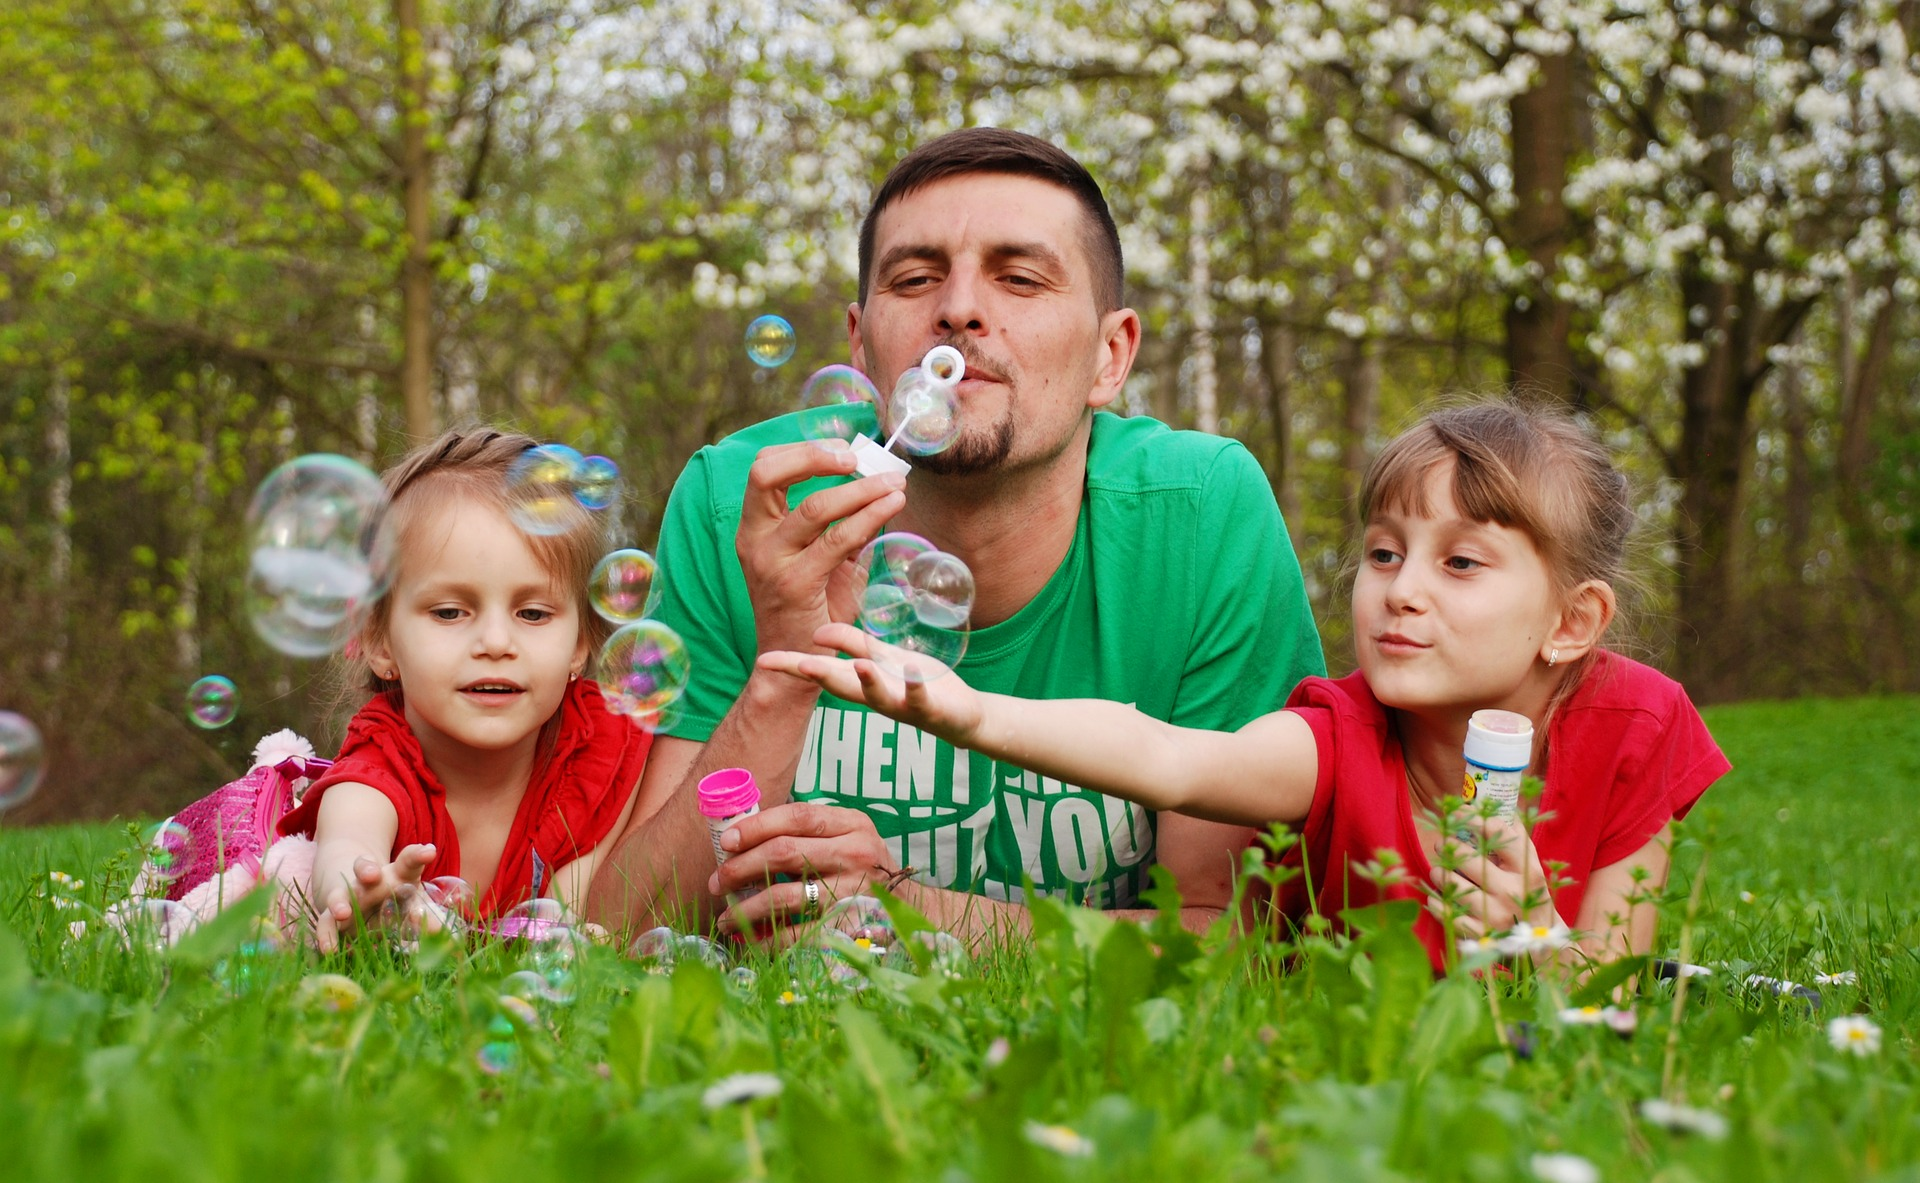 Dad blowing bubbles with daughter in spring